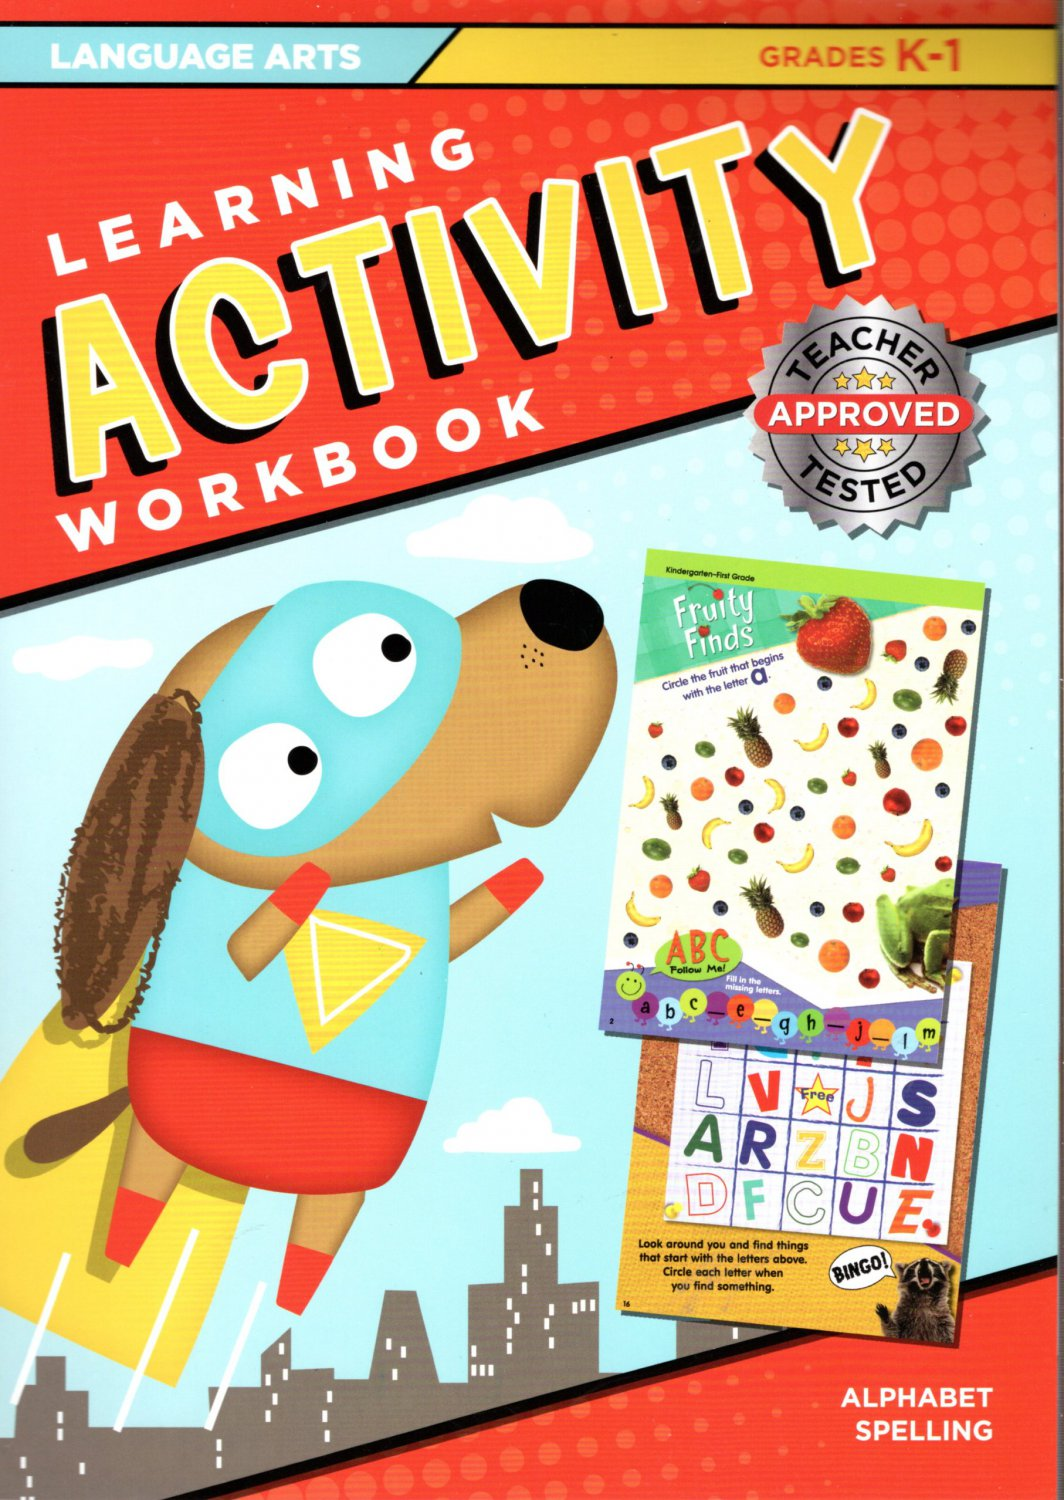 Learning Activity Workbook - Language Arts Grades K 1 - Alphabet Spelling